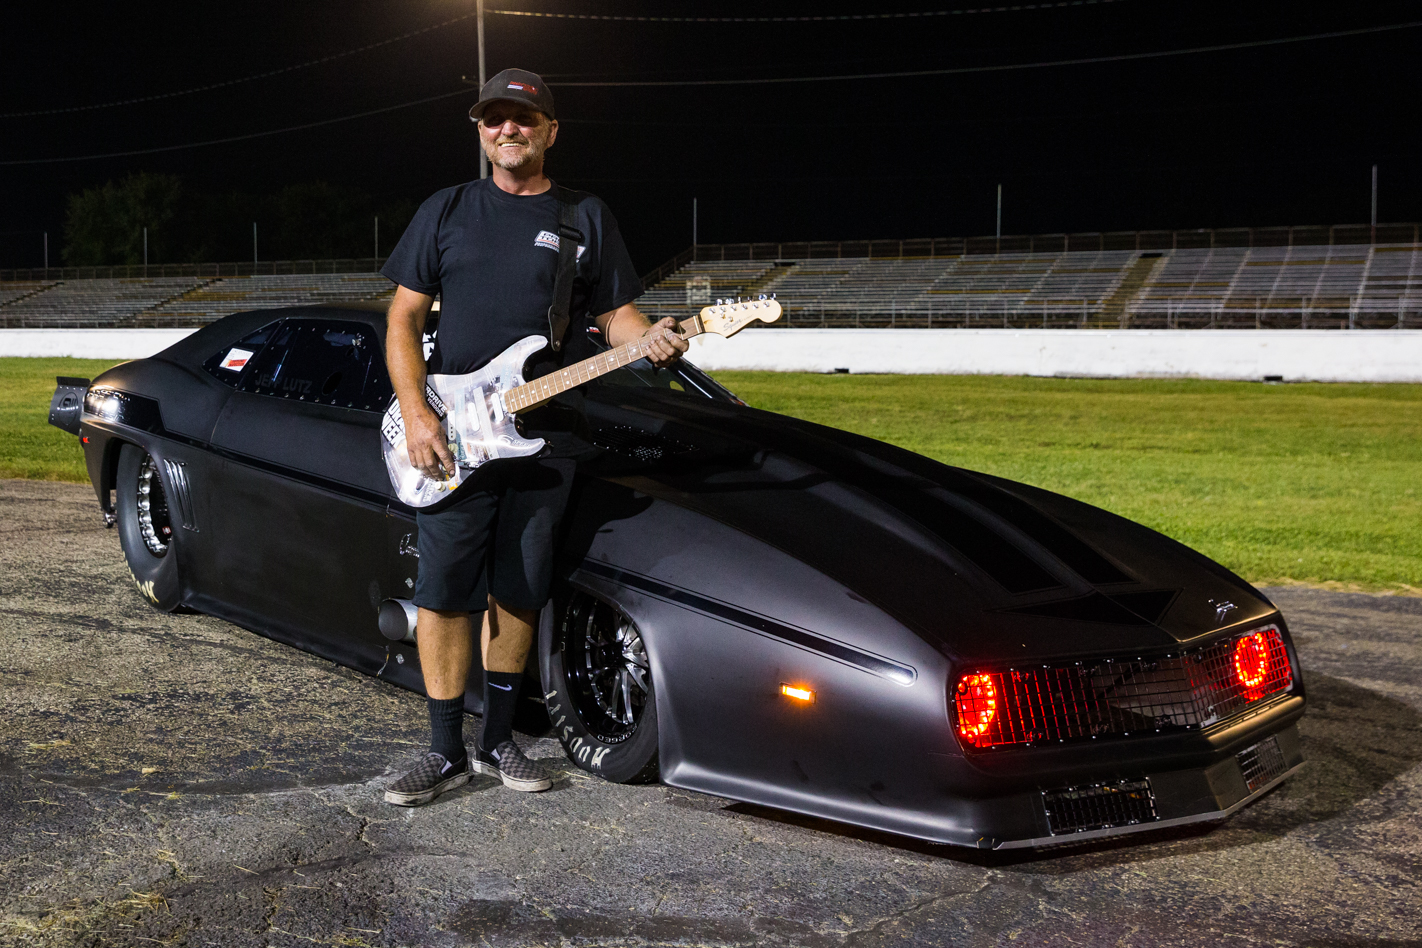 Jeff Lutz Dominated The Drag Week With His Wicked Mad Max Pro